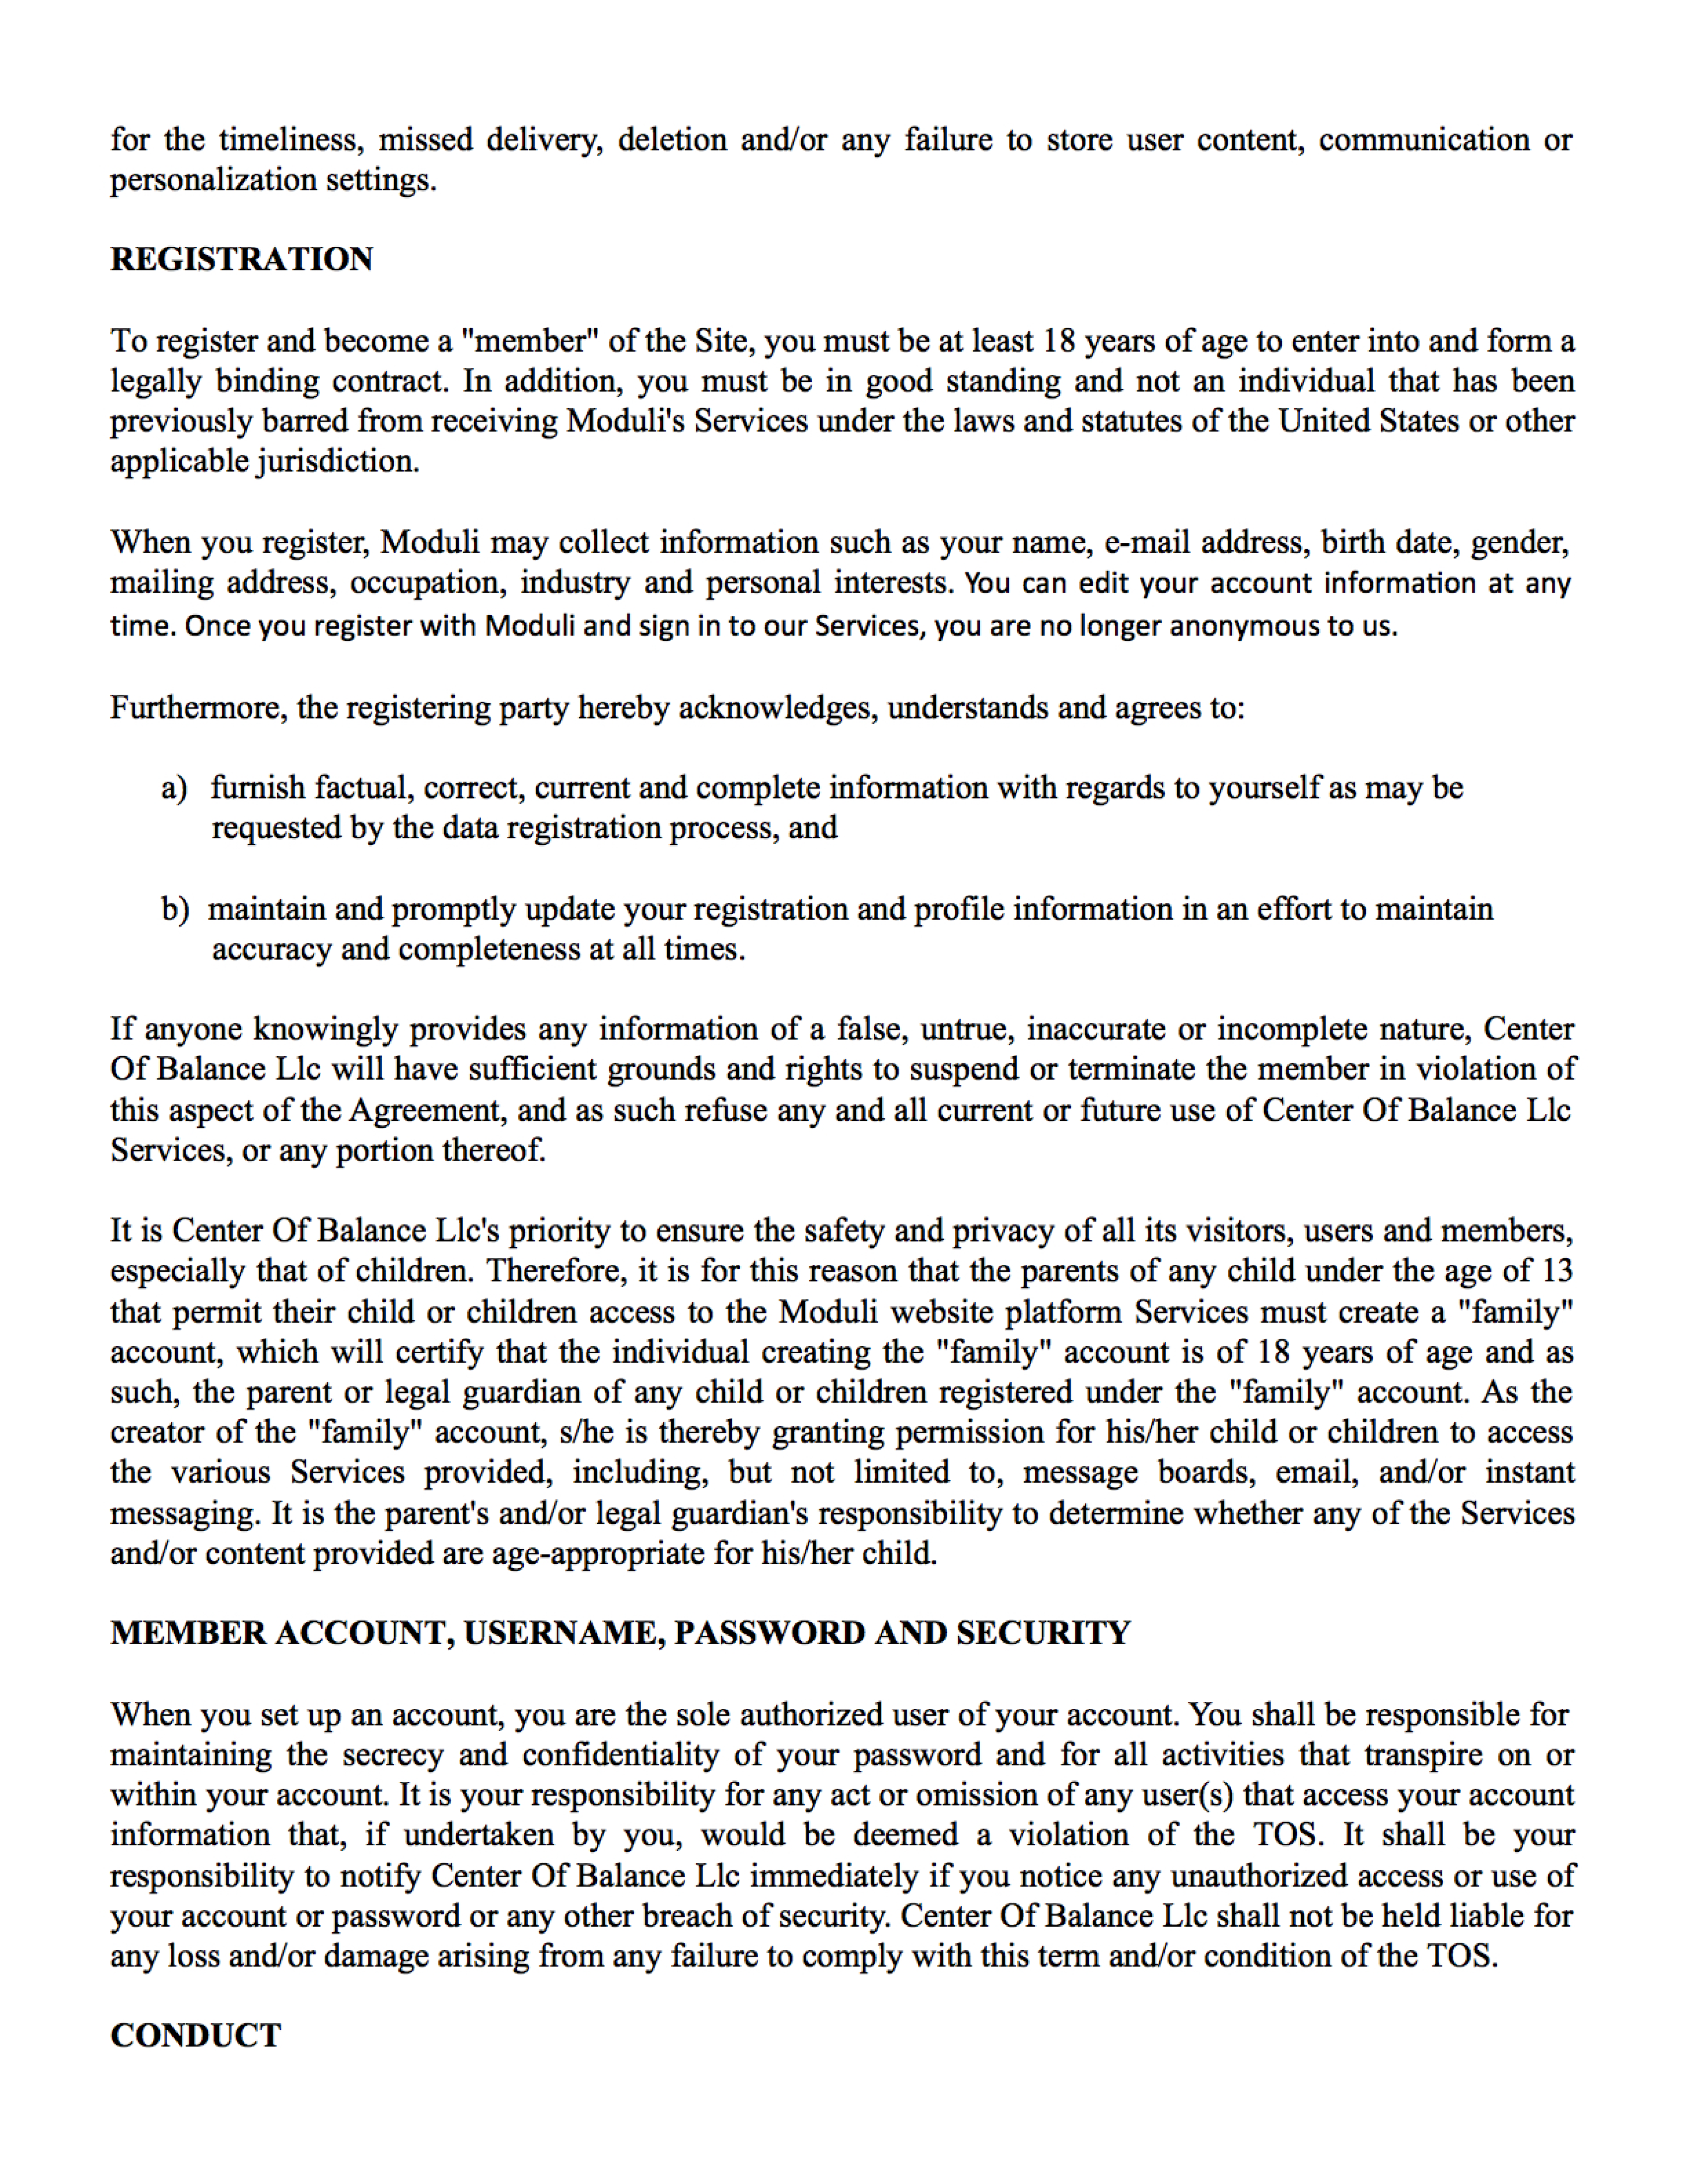 terms-and-conditions-b-page-02.png